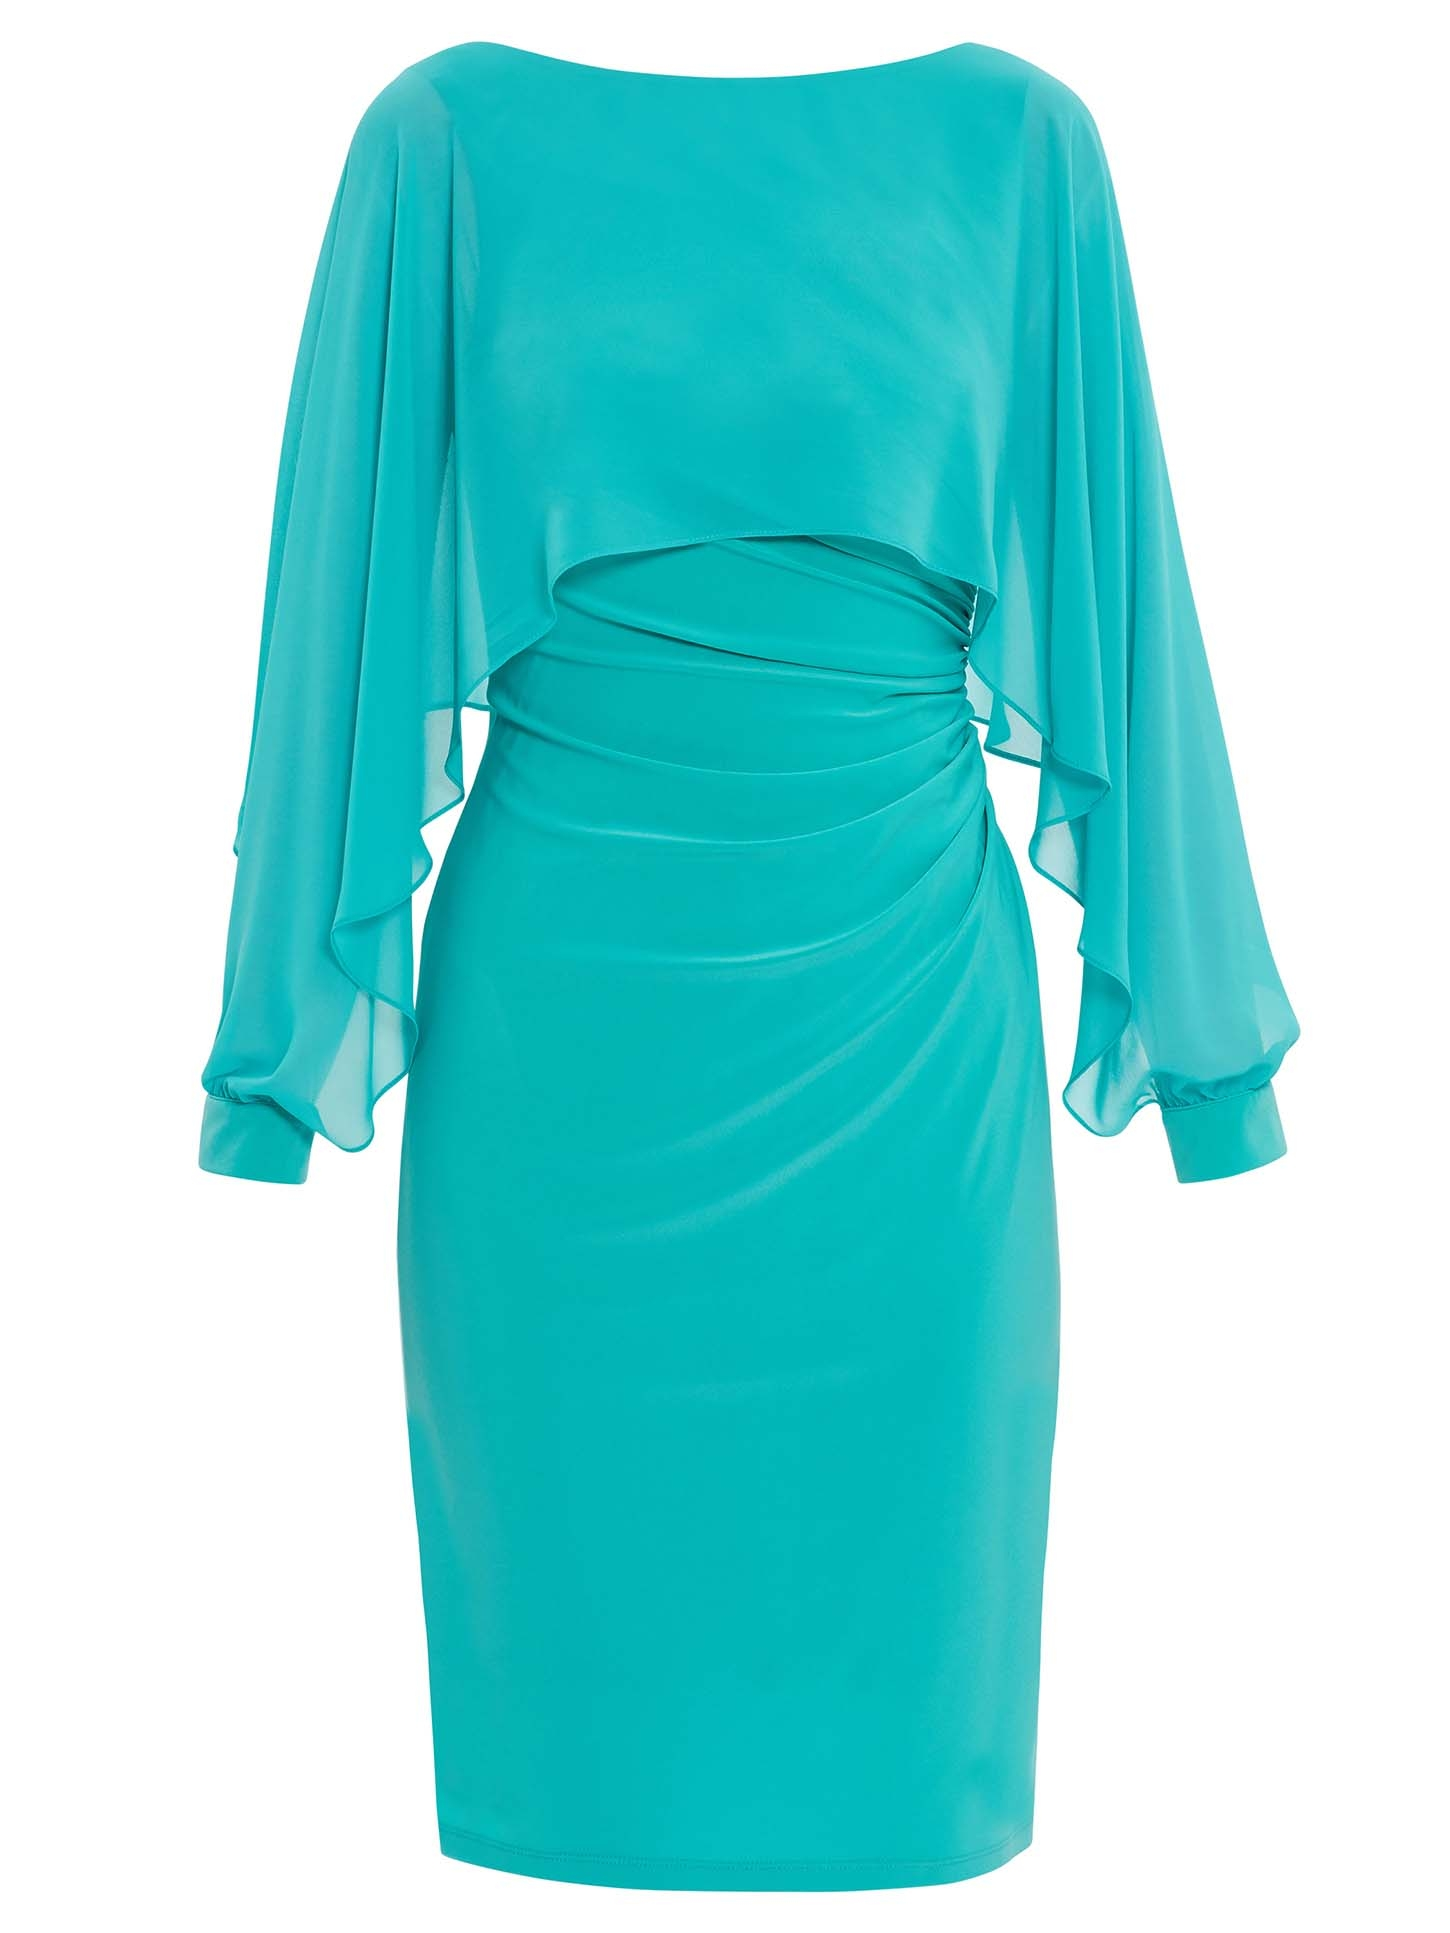 Olma Jersey And Chiffon Dress